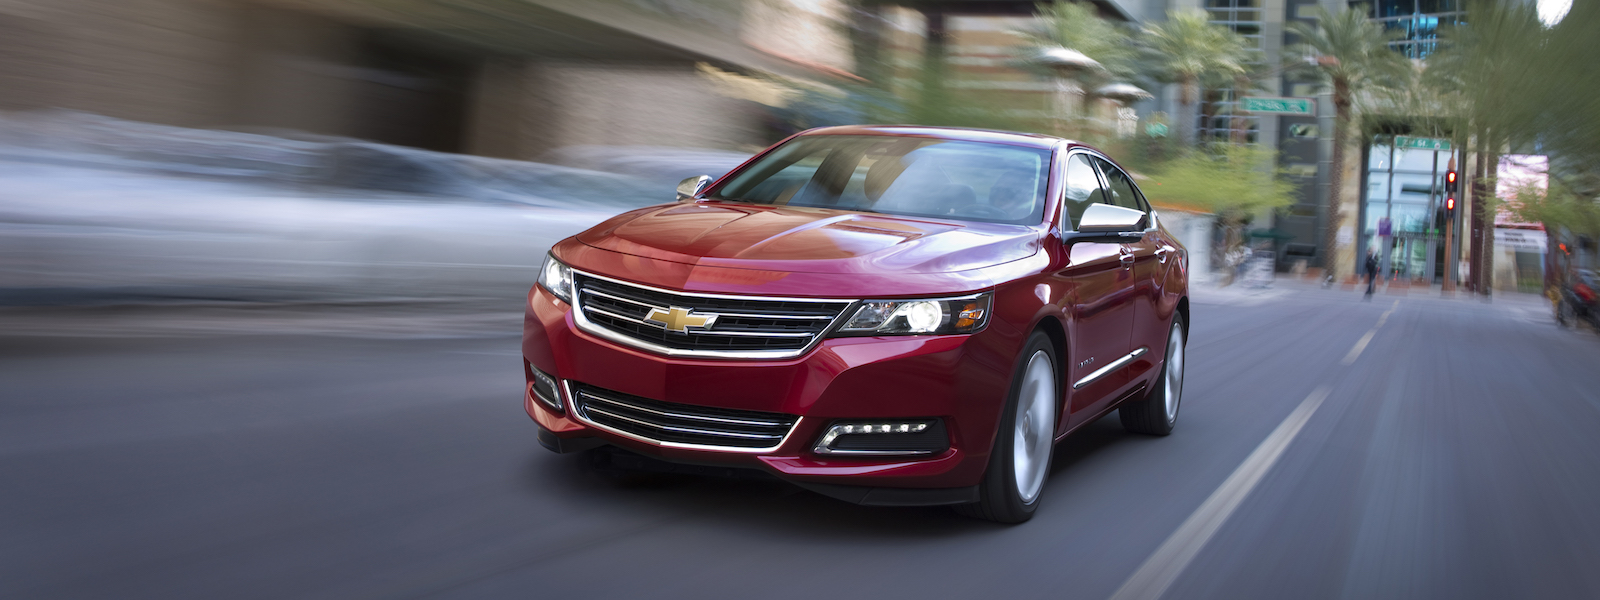 A red 2016 Chevy Impala is driving on a city street in Albany, NY.